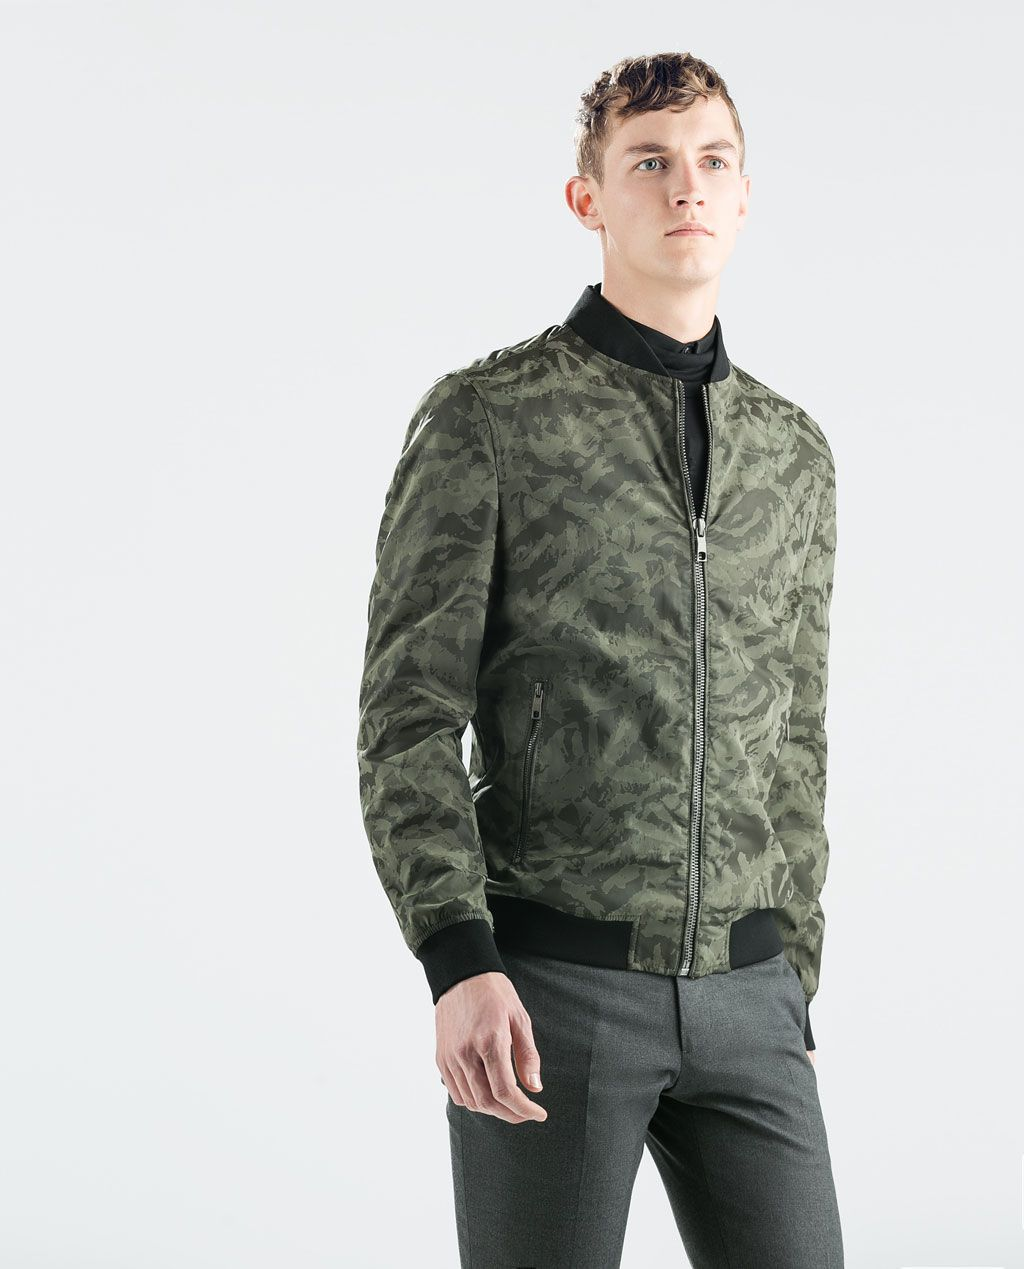 ZARA SALE CAMOUFLAGE FAUX LEATHER BOMBER fashion